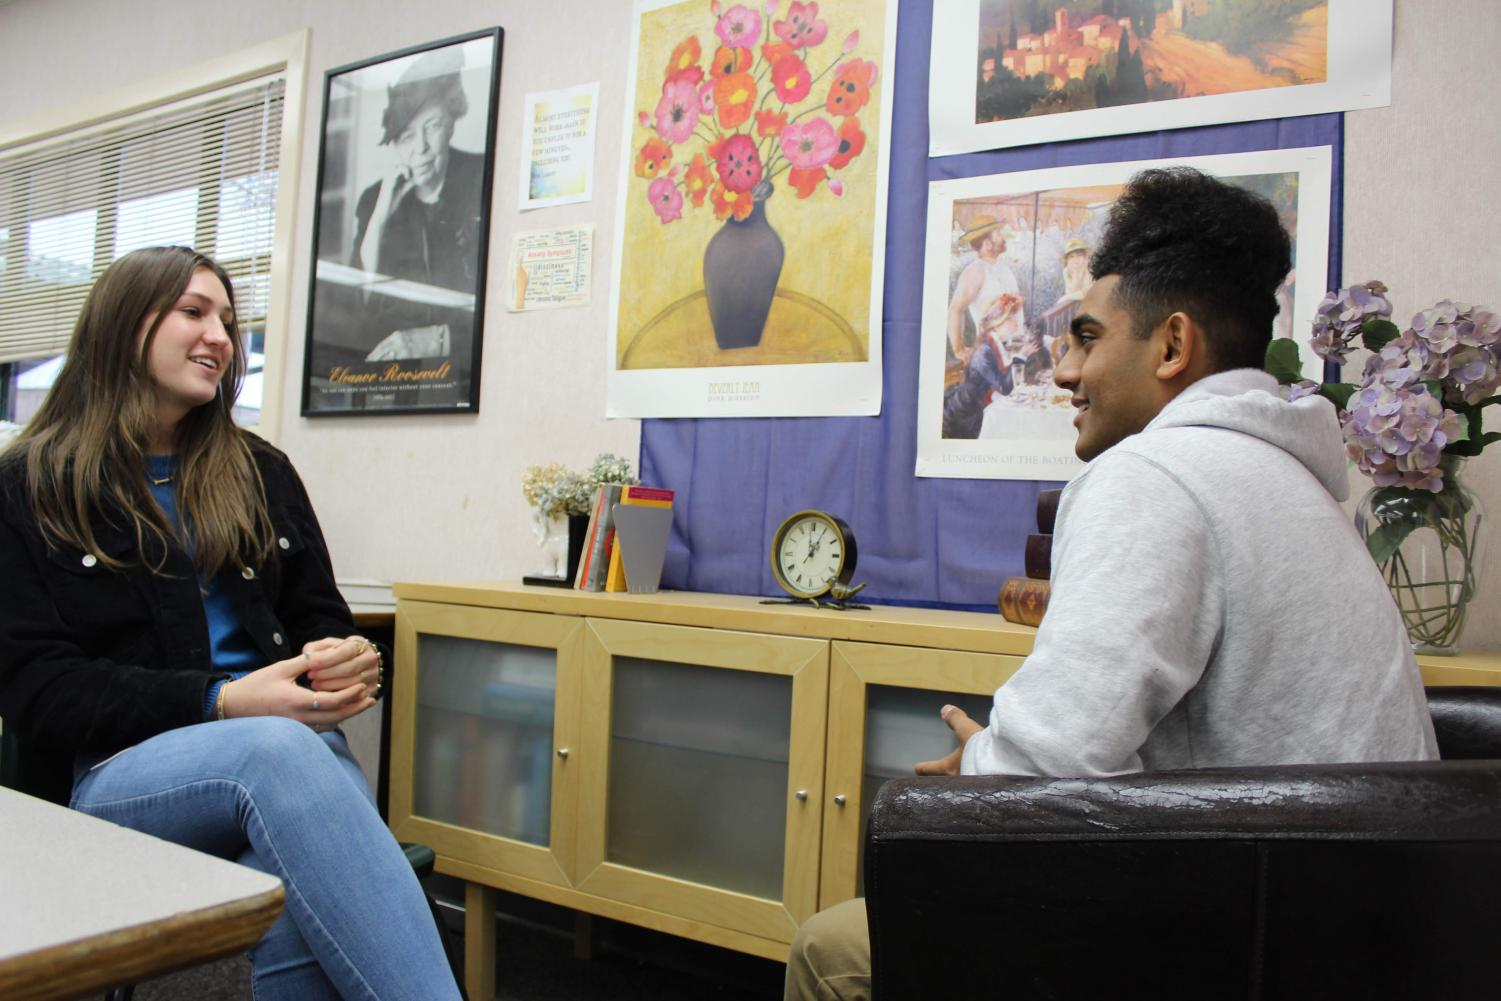 Trained peer counselors Michela Smith and Akhil Shah discuss the importance of thier work at GBHS.